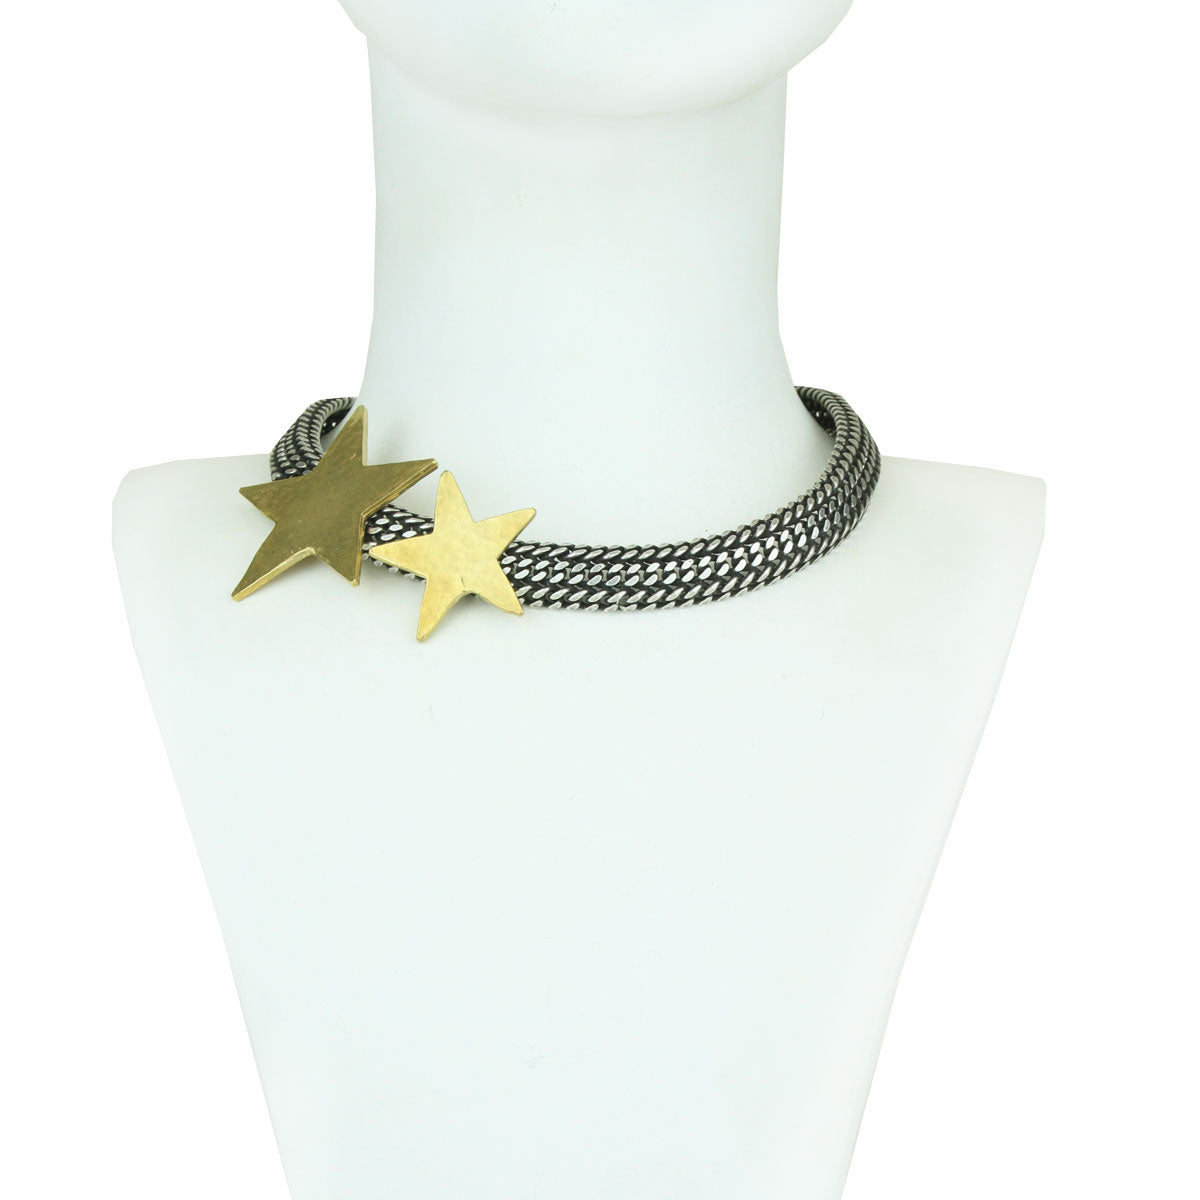 Celeste Silver Chain and Star Necklace